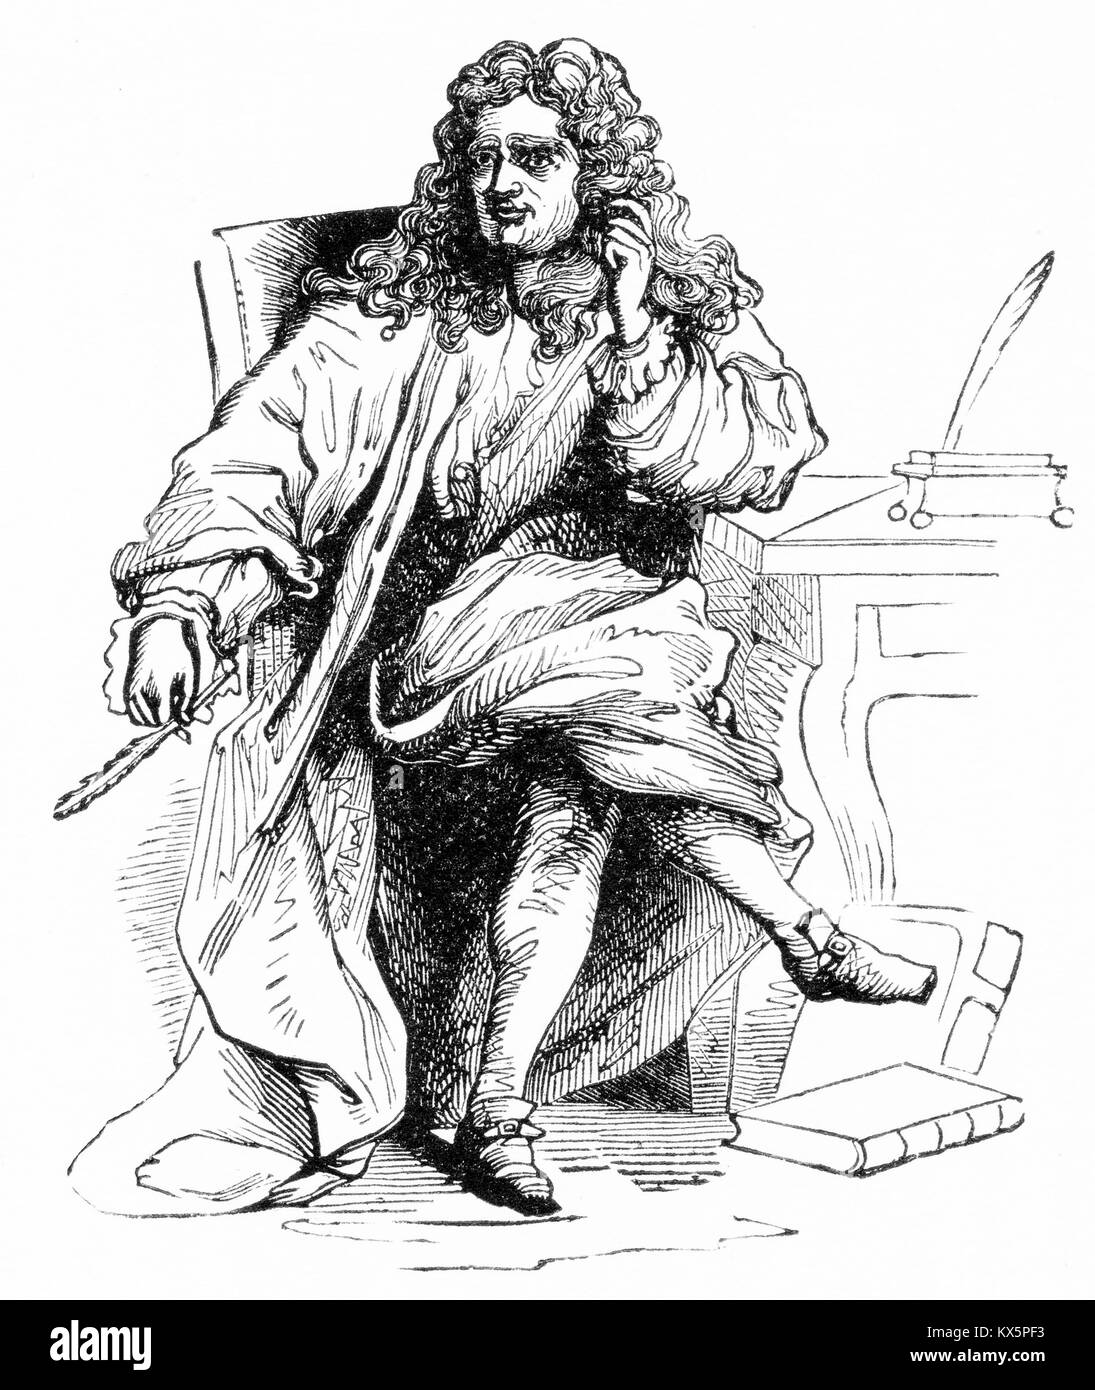 Engraving of Nicolas Boileau (1636 - 1711), French poet, author and contemporary of Jean Racine. - Stock Image